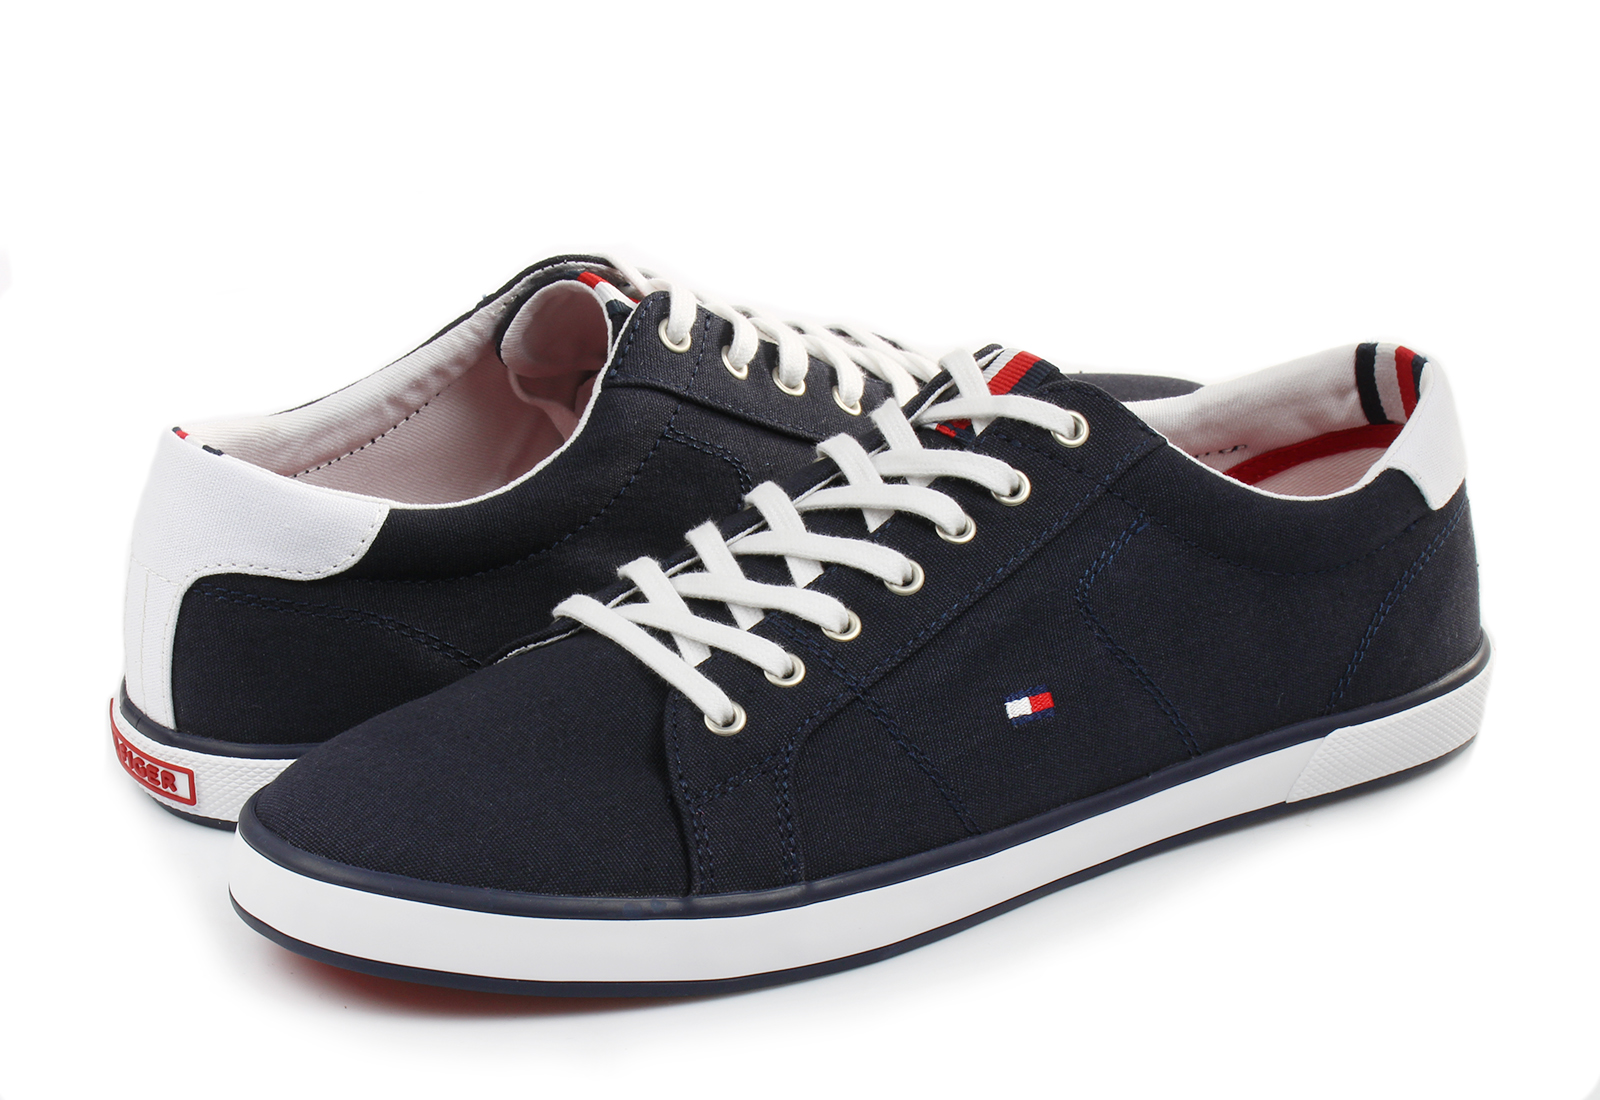 Tommy Hilfiger Cipő - Harlow 1 - 17S-0596-403 - Office Shoes ... b8122a043d